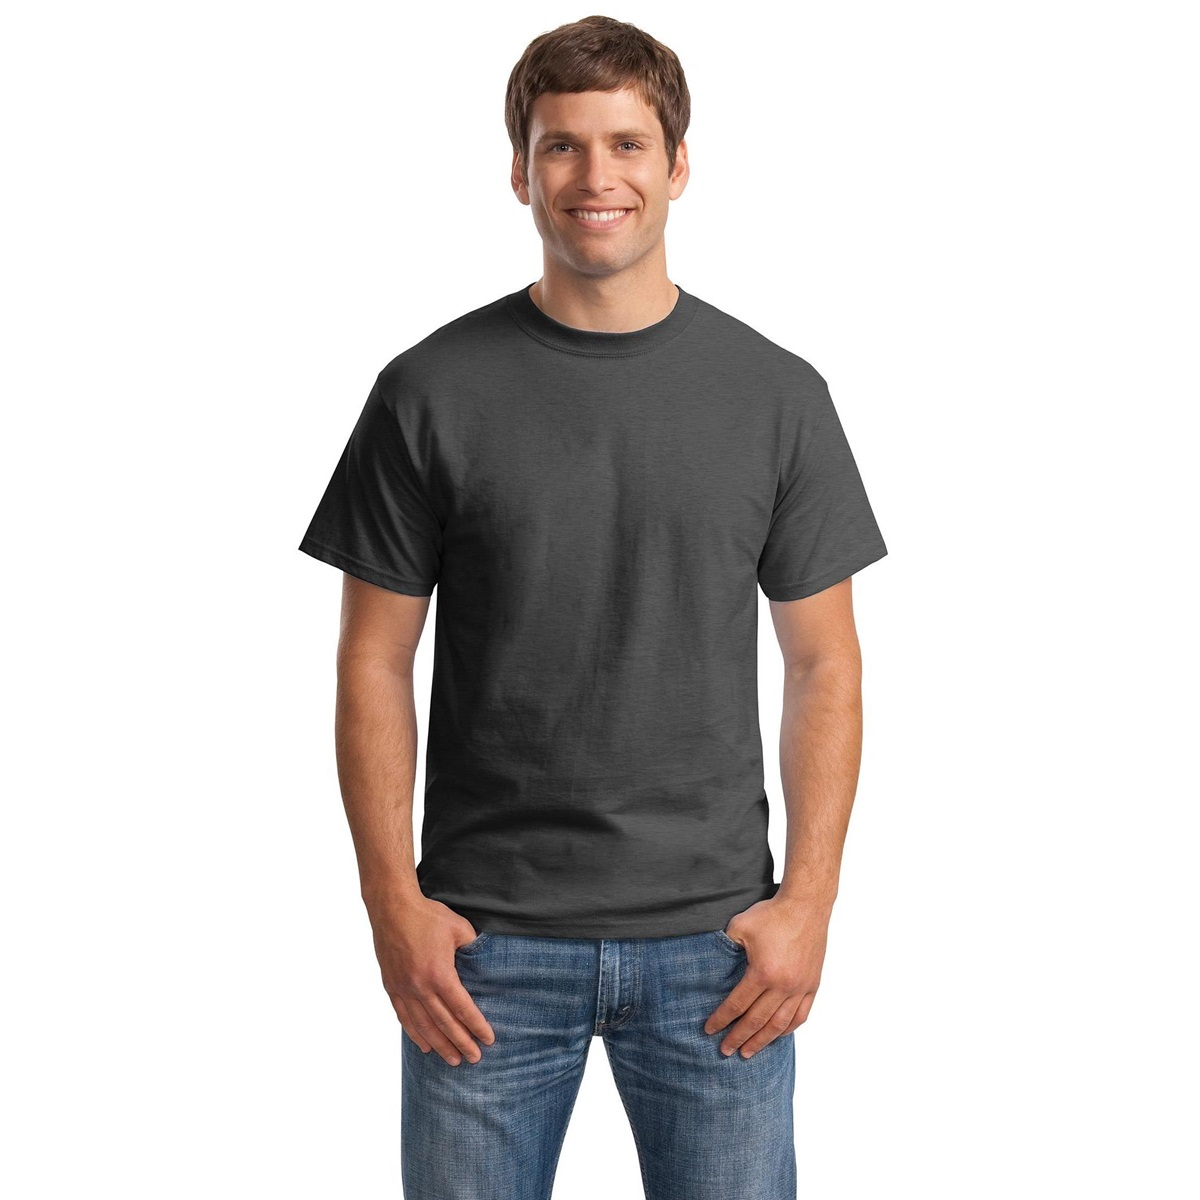 Hanes 5180 beefy t cotton t shirt charcoal heather for Hanes beefy t custom shirts